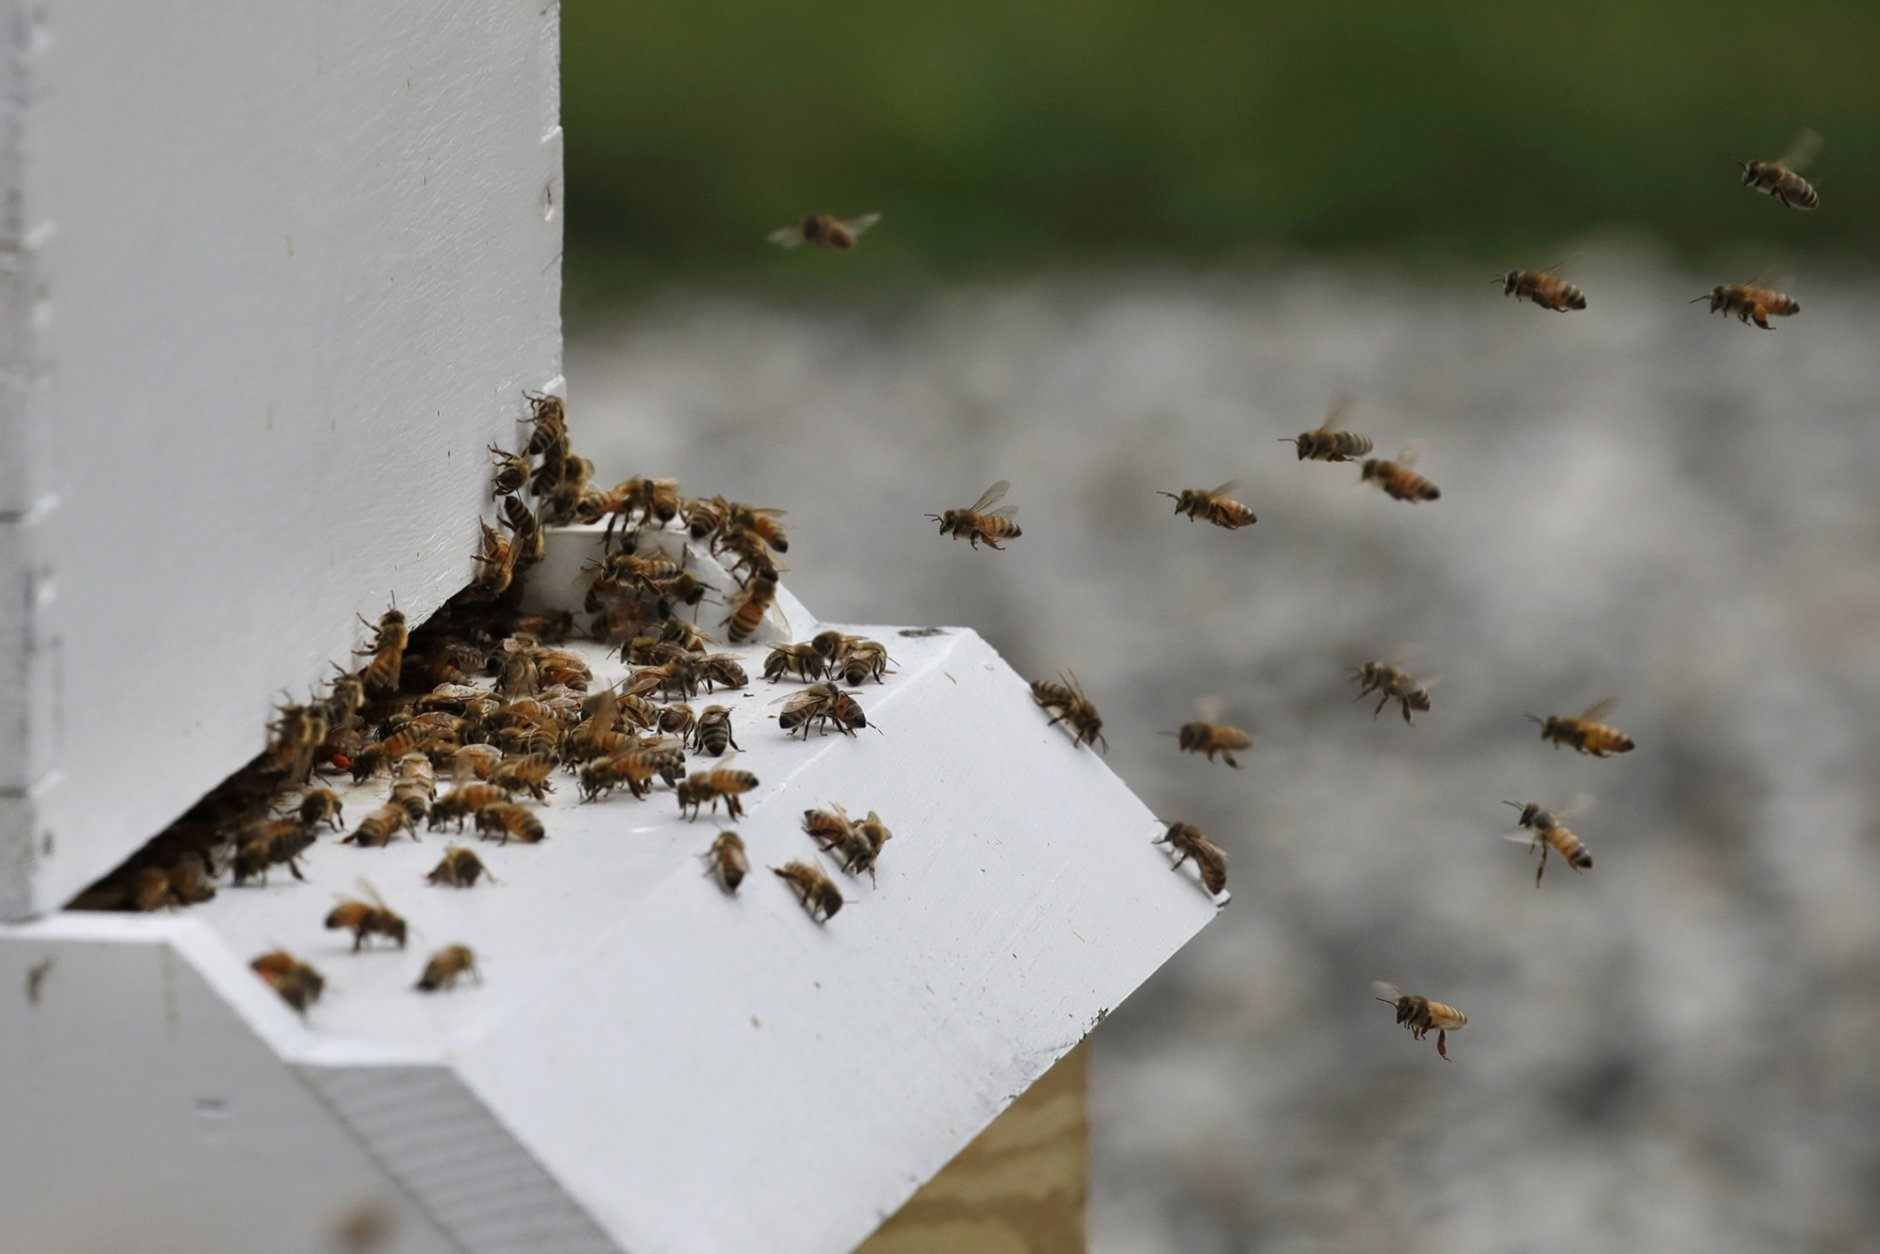 <p>In this Aug. 7, 2019 photo, bees return to a hive at the Veterans Affairs in Manchester, N.H. Veterans Affairs has begun offering beekeeping at a few facilities including in New Hampshire and Michigan, and researchers are starting to study whether the practice has therapeutic benefits. Veterans in programs like the one at the Manchester VA Medical Center insist that beekeeping helps them focus, relax and become more productive. (AP Photo/Elise Amendola)</p>